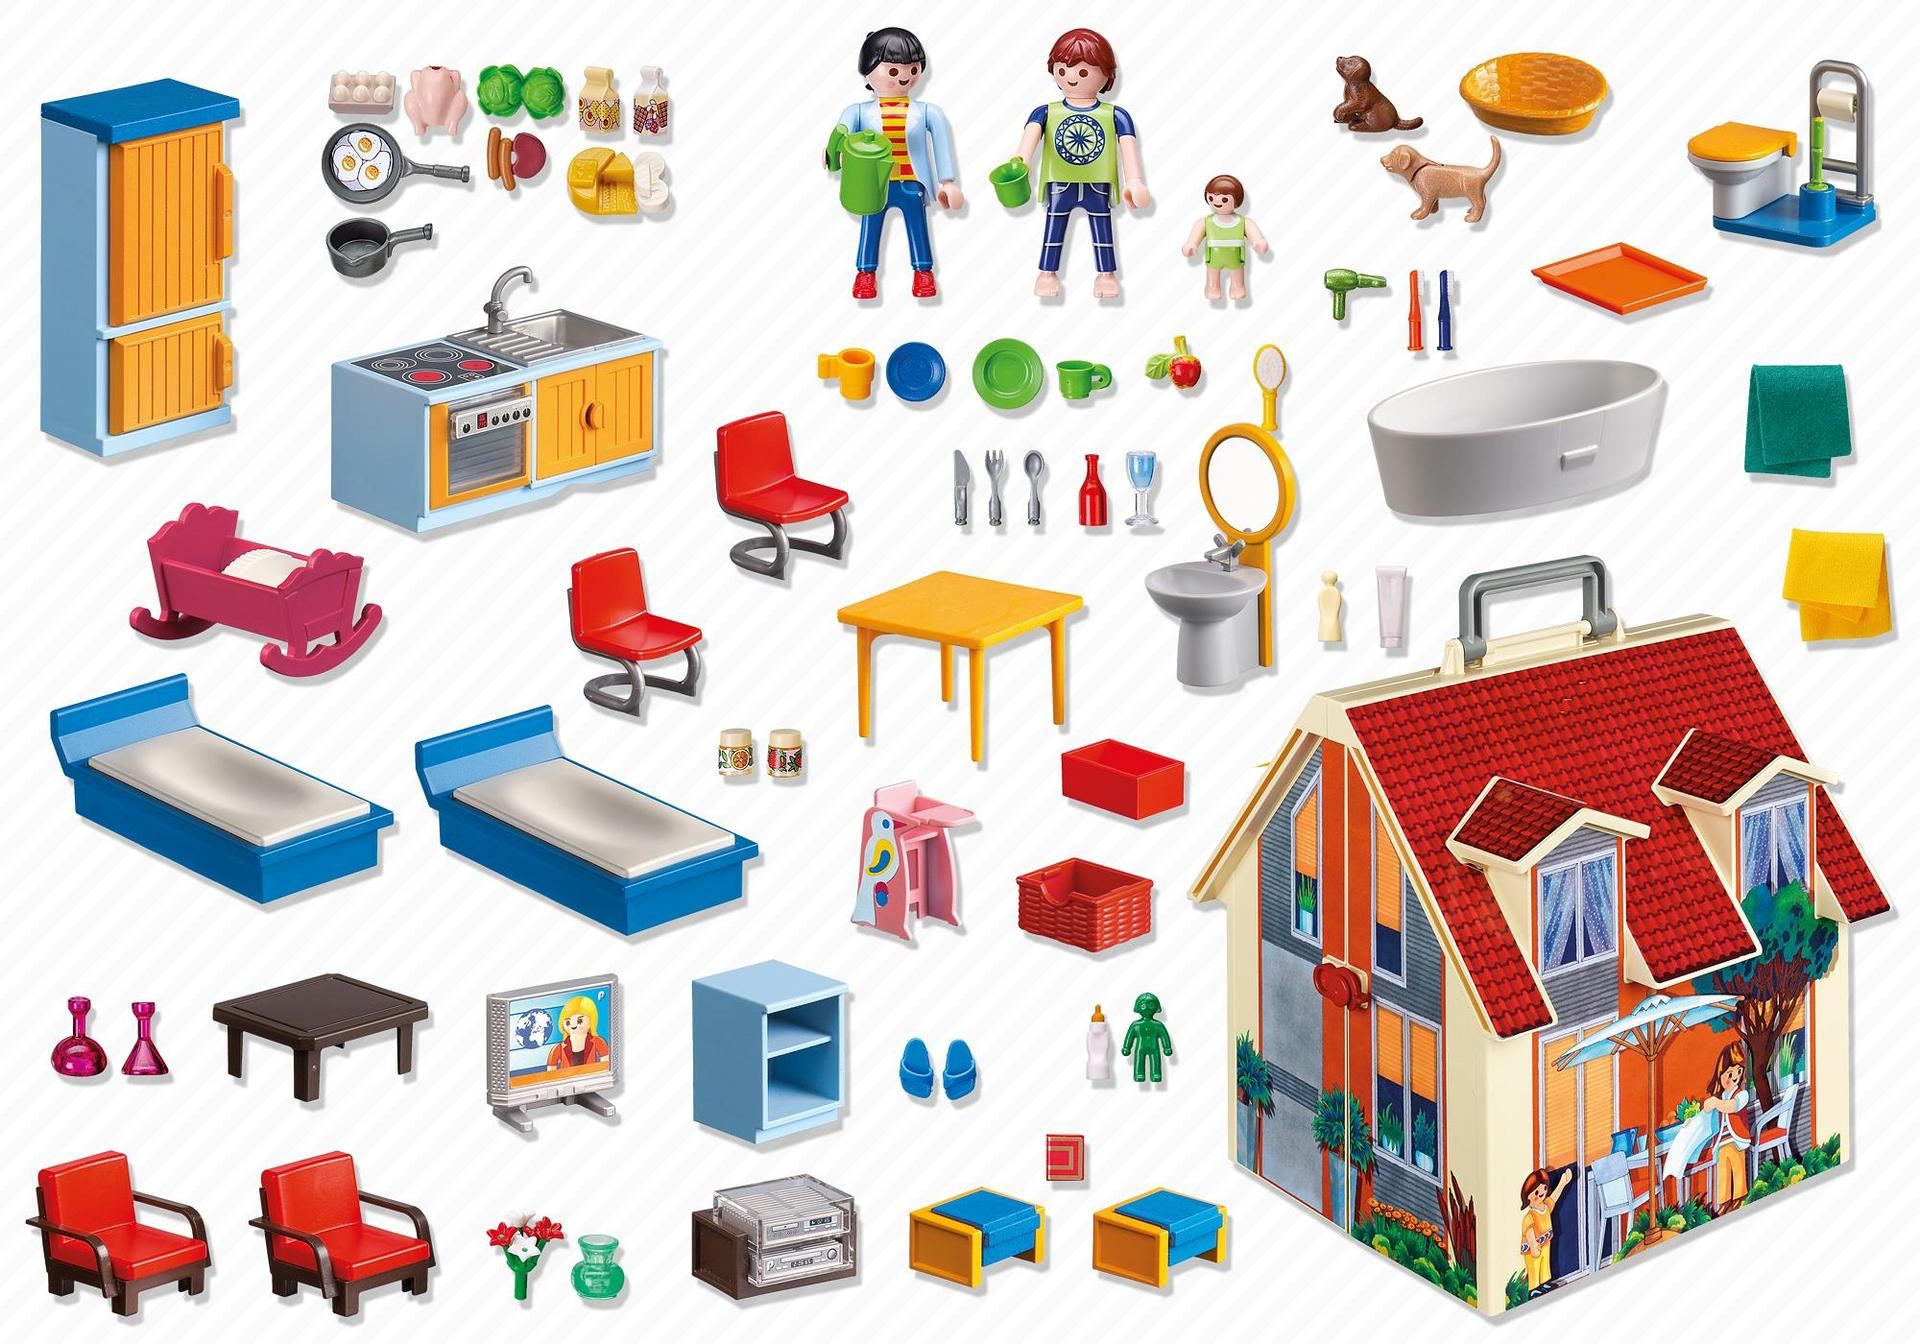 Casa de mu ecas malet n 5167 playmobil espa a for Case di kit vittoriano